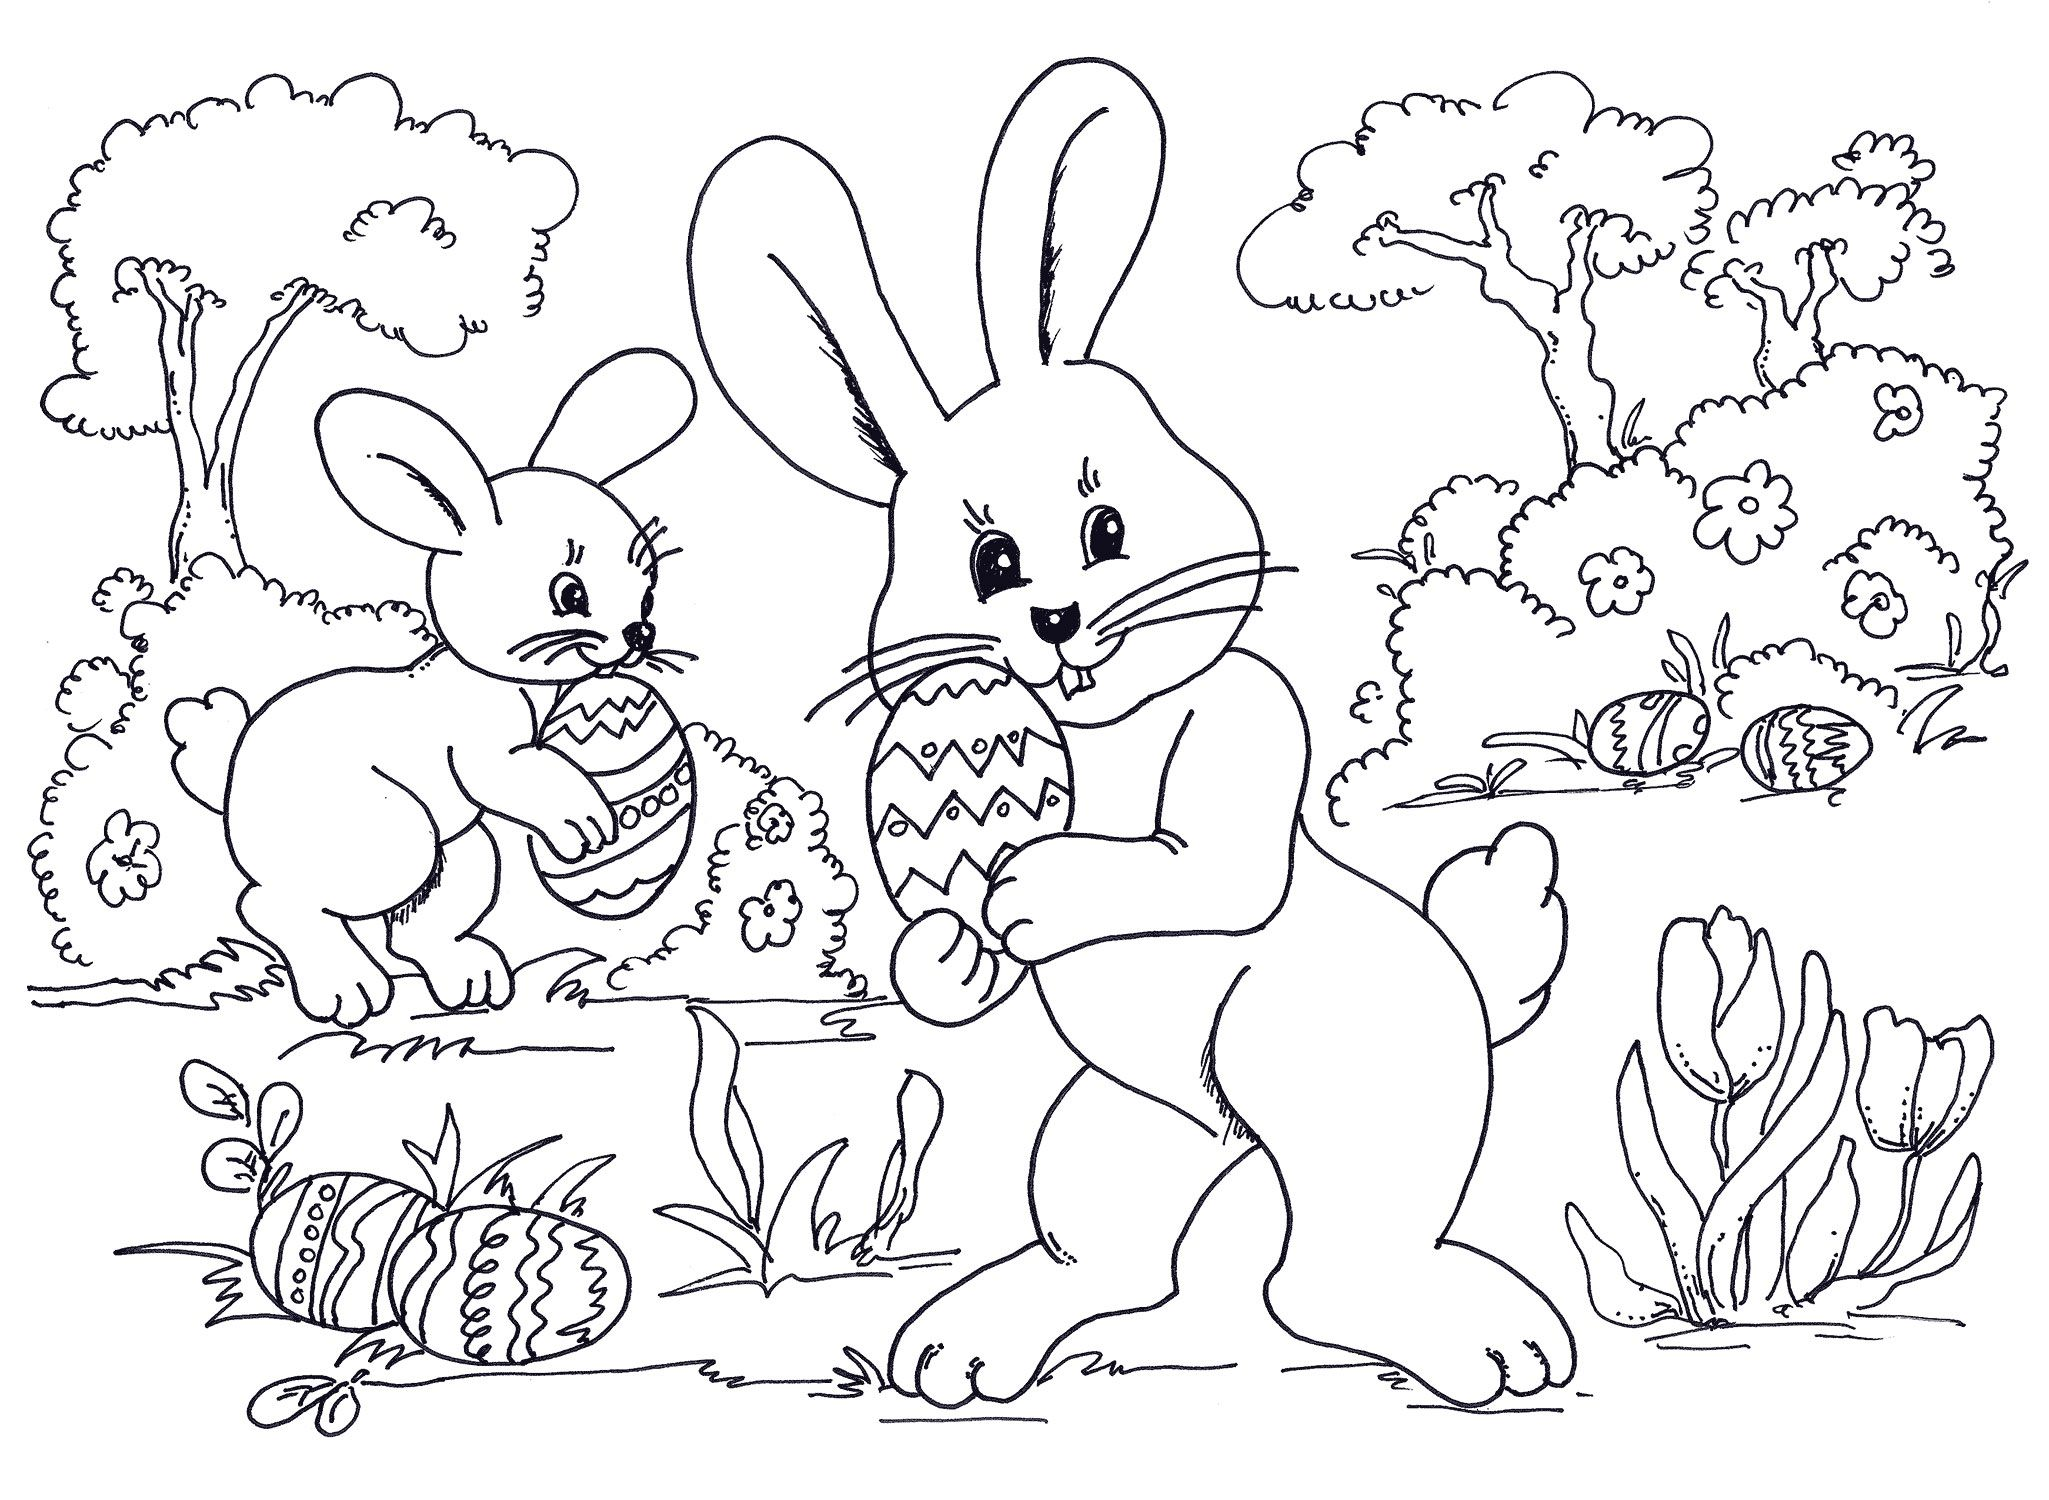 Happy Easter Day Colouring Printable Crafts | Easter Ideas ...